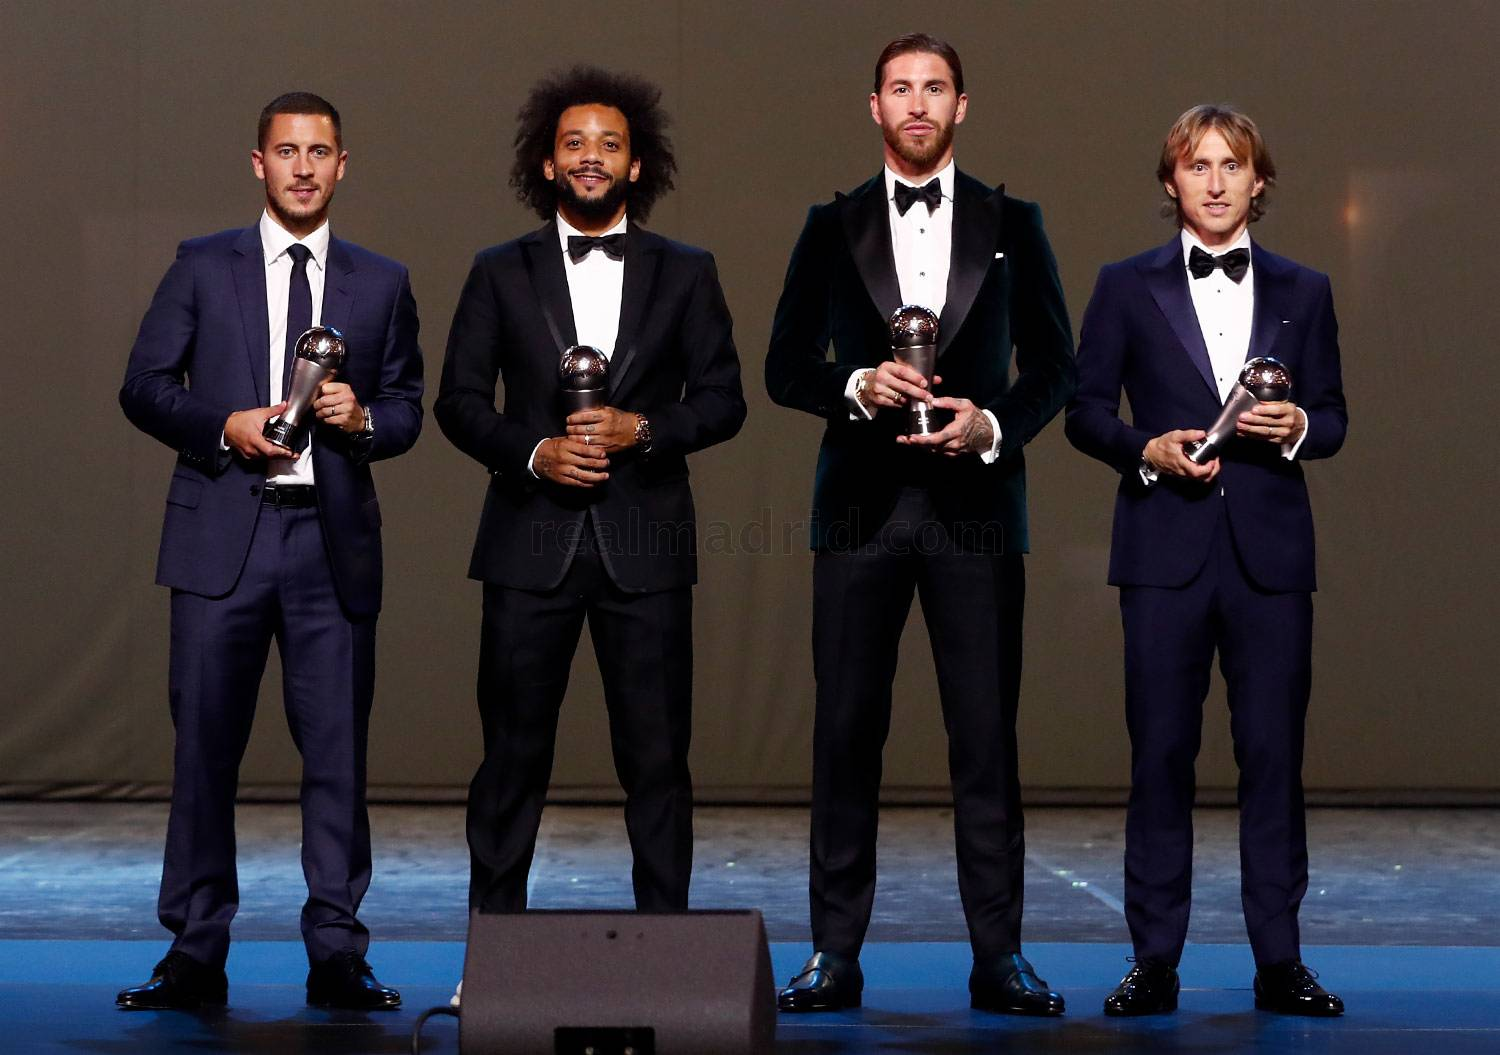 Real Madrid - Ramos, Marcelo, Modric y Hazard, en el FIFA FIFPro World11 - 23-09-2019